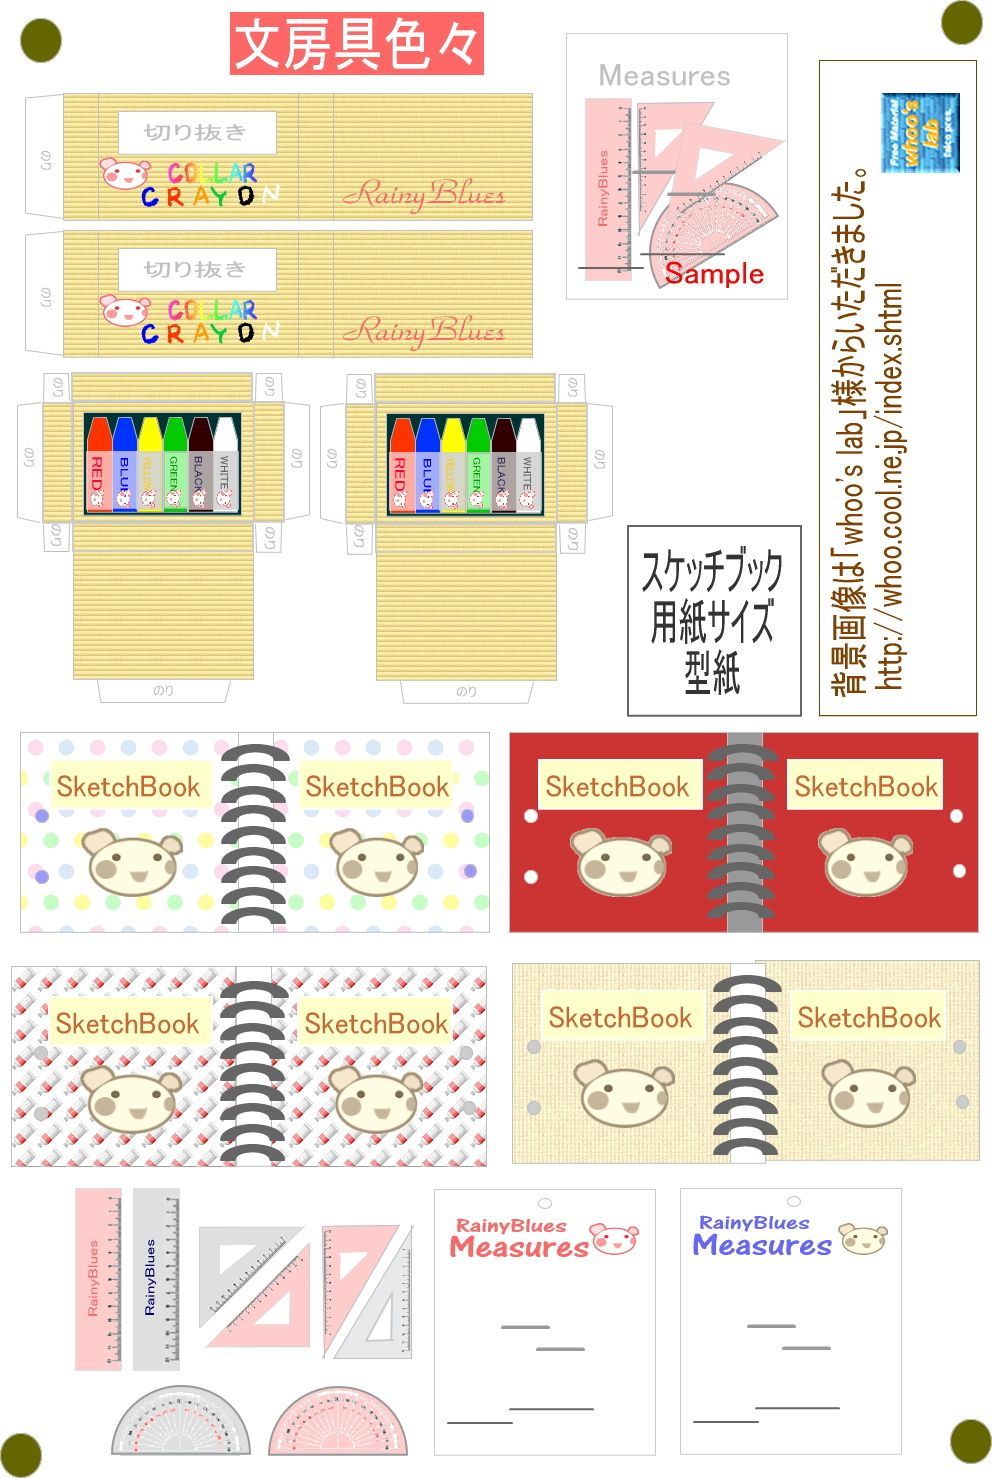 stationery_p.jpg 992×1,478 pixels